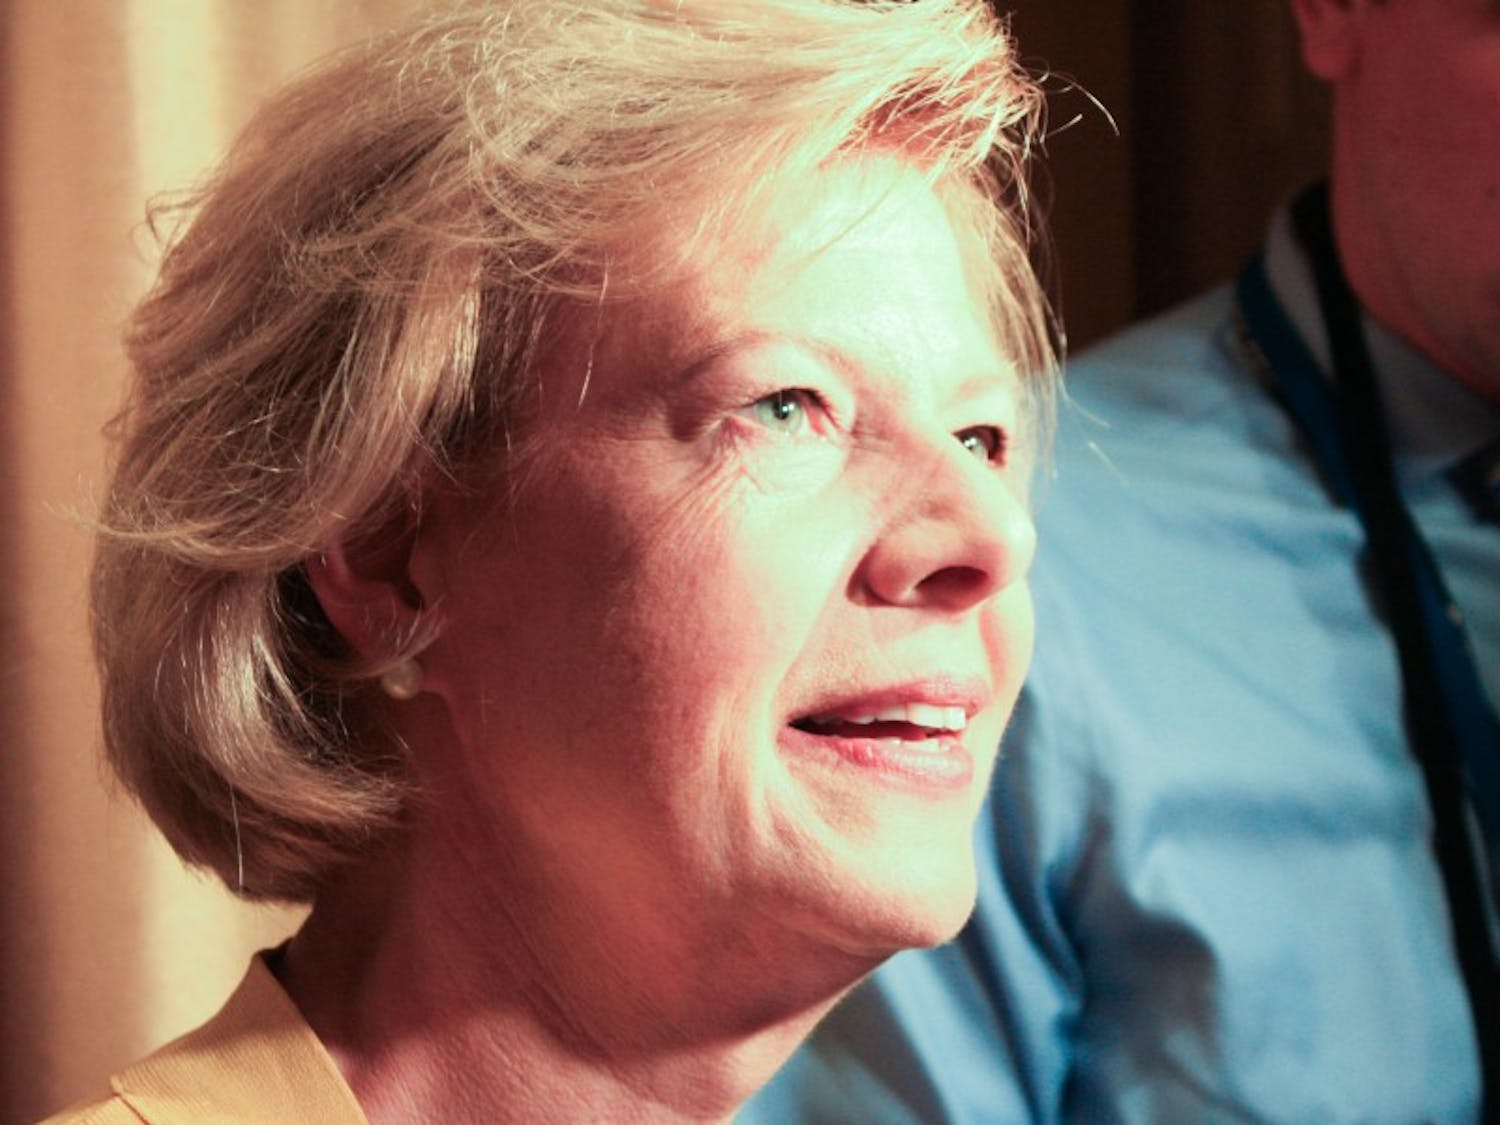 U.S. Sen. Tammy Baldwin, D-Wis., said the nomination of Hillary Clinton this year is historic for women in public service.